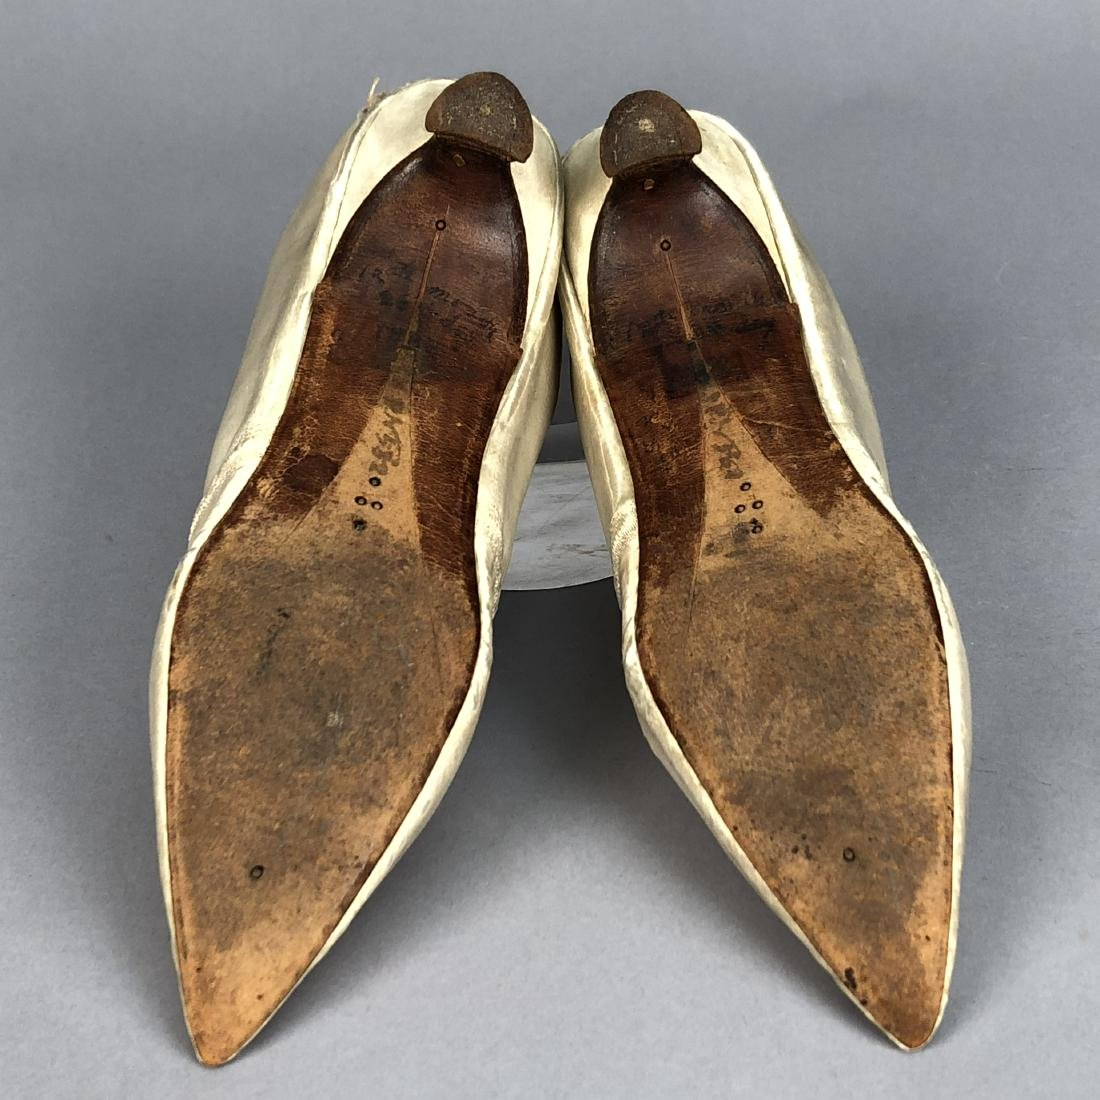 WHITE SATIN PUMPS, c. 1790 - 3